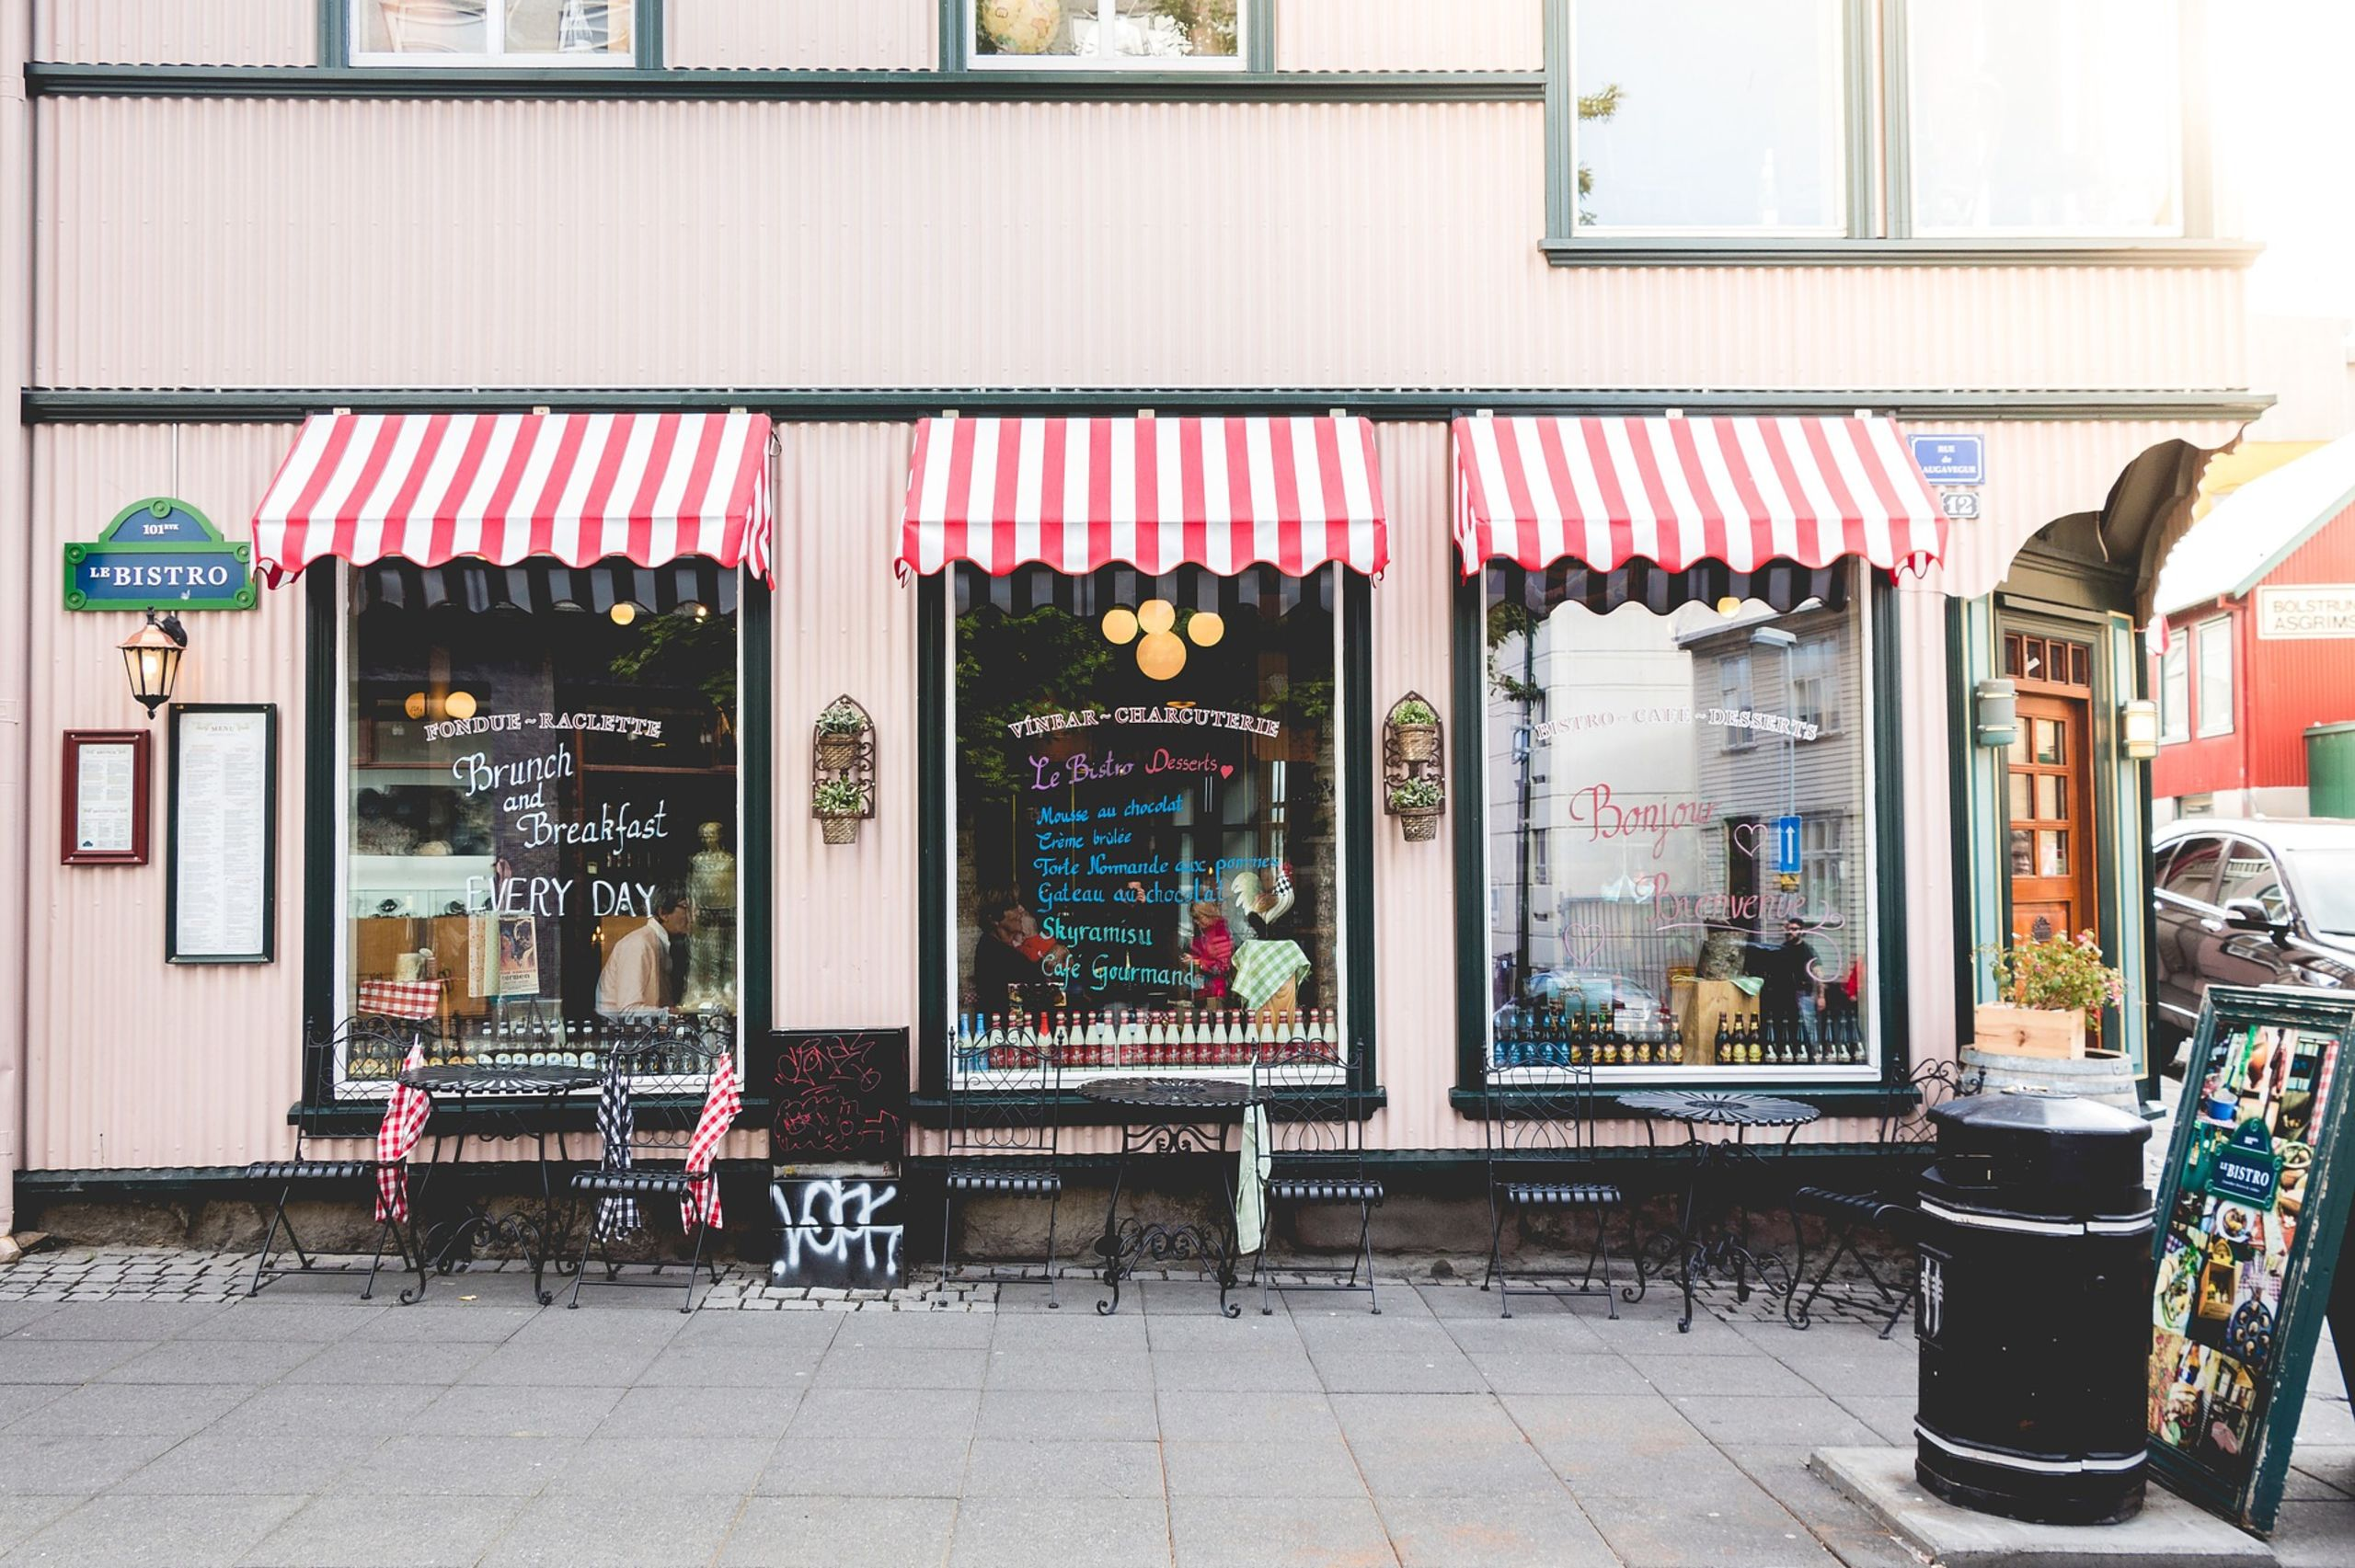 Businesses for Sale or Purchase